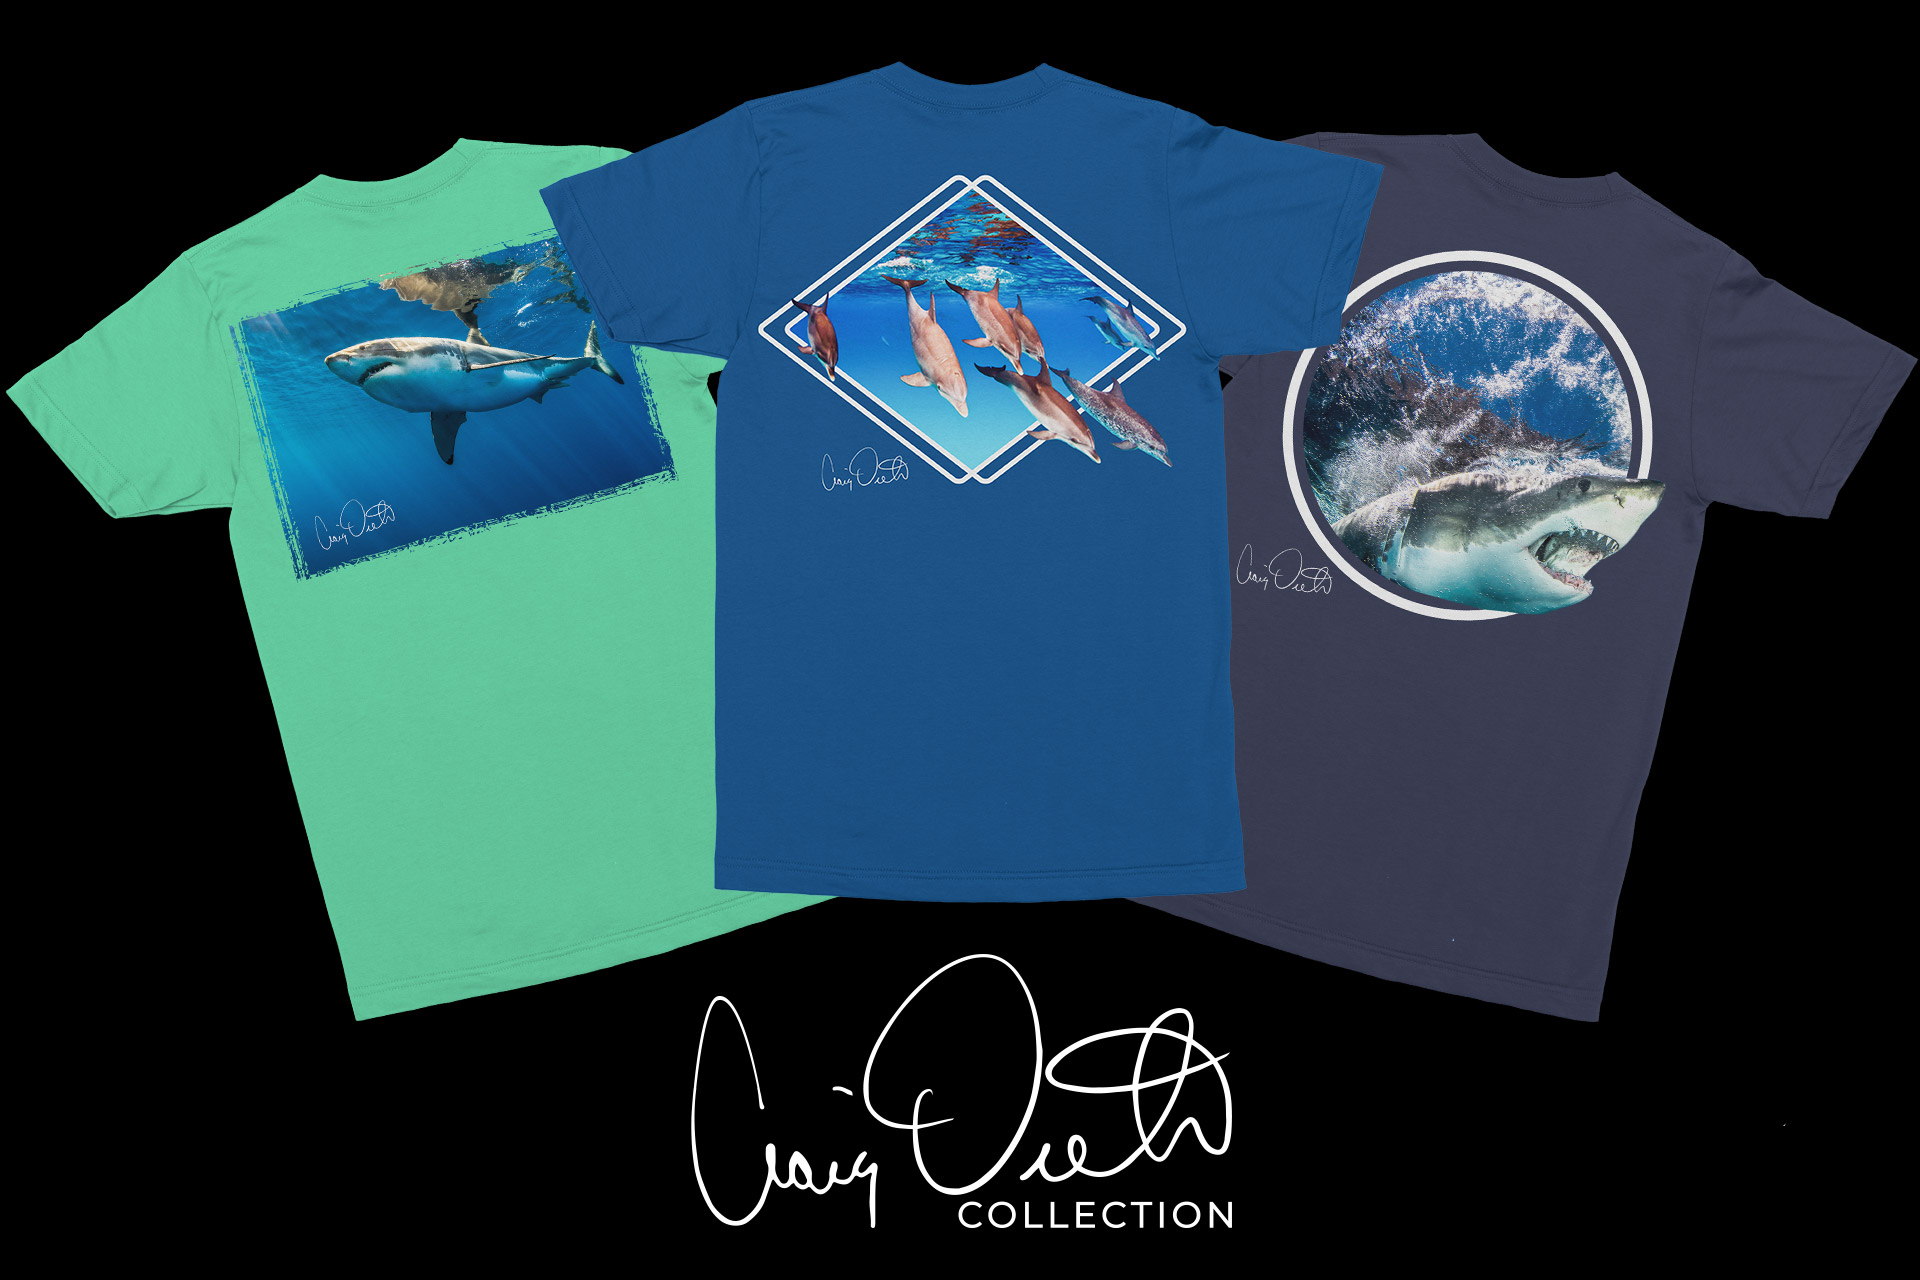 apparel made for ocean lovers. -